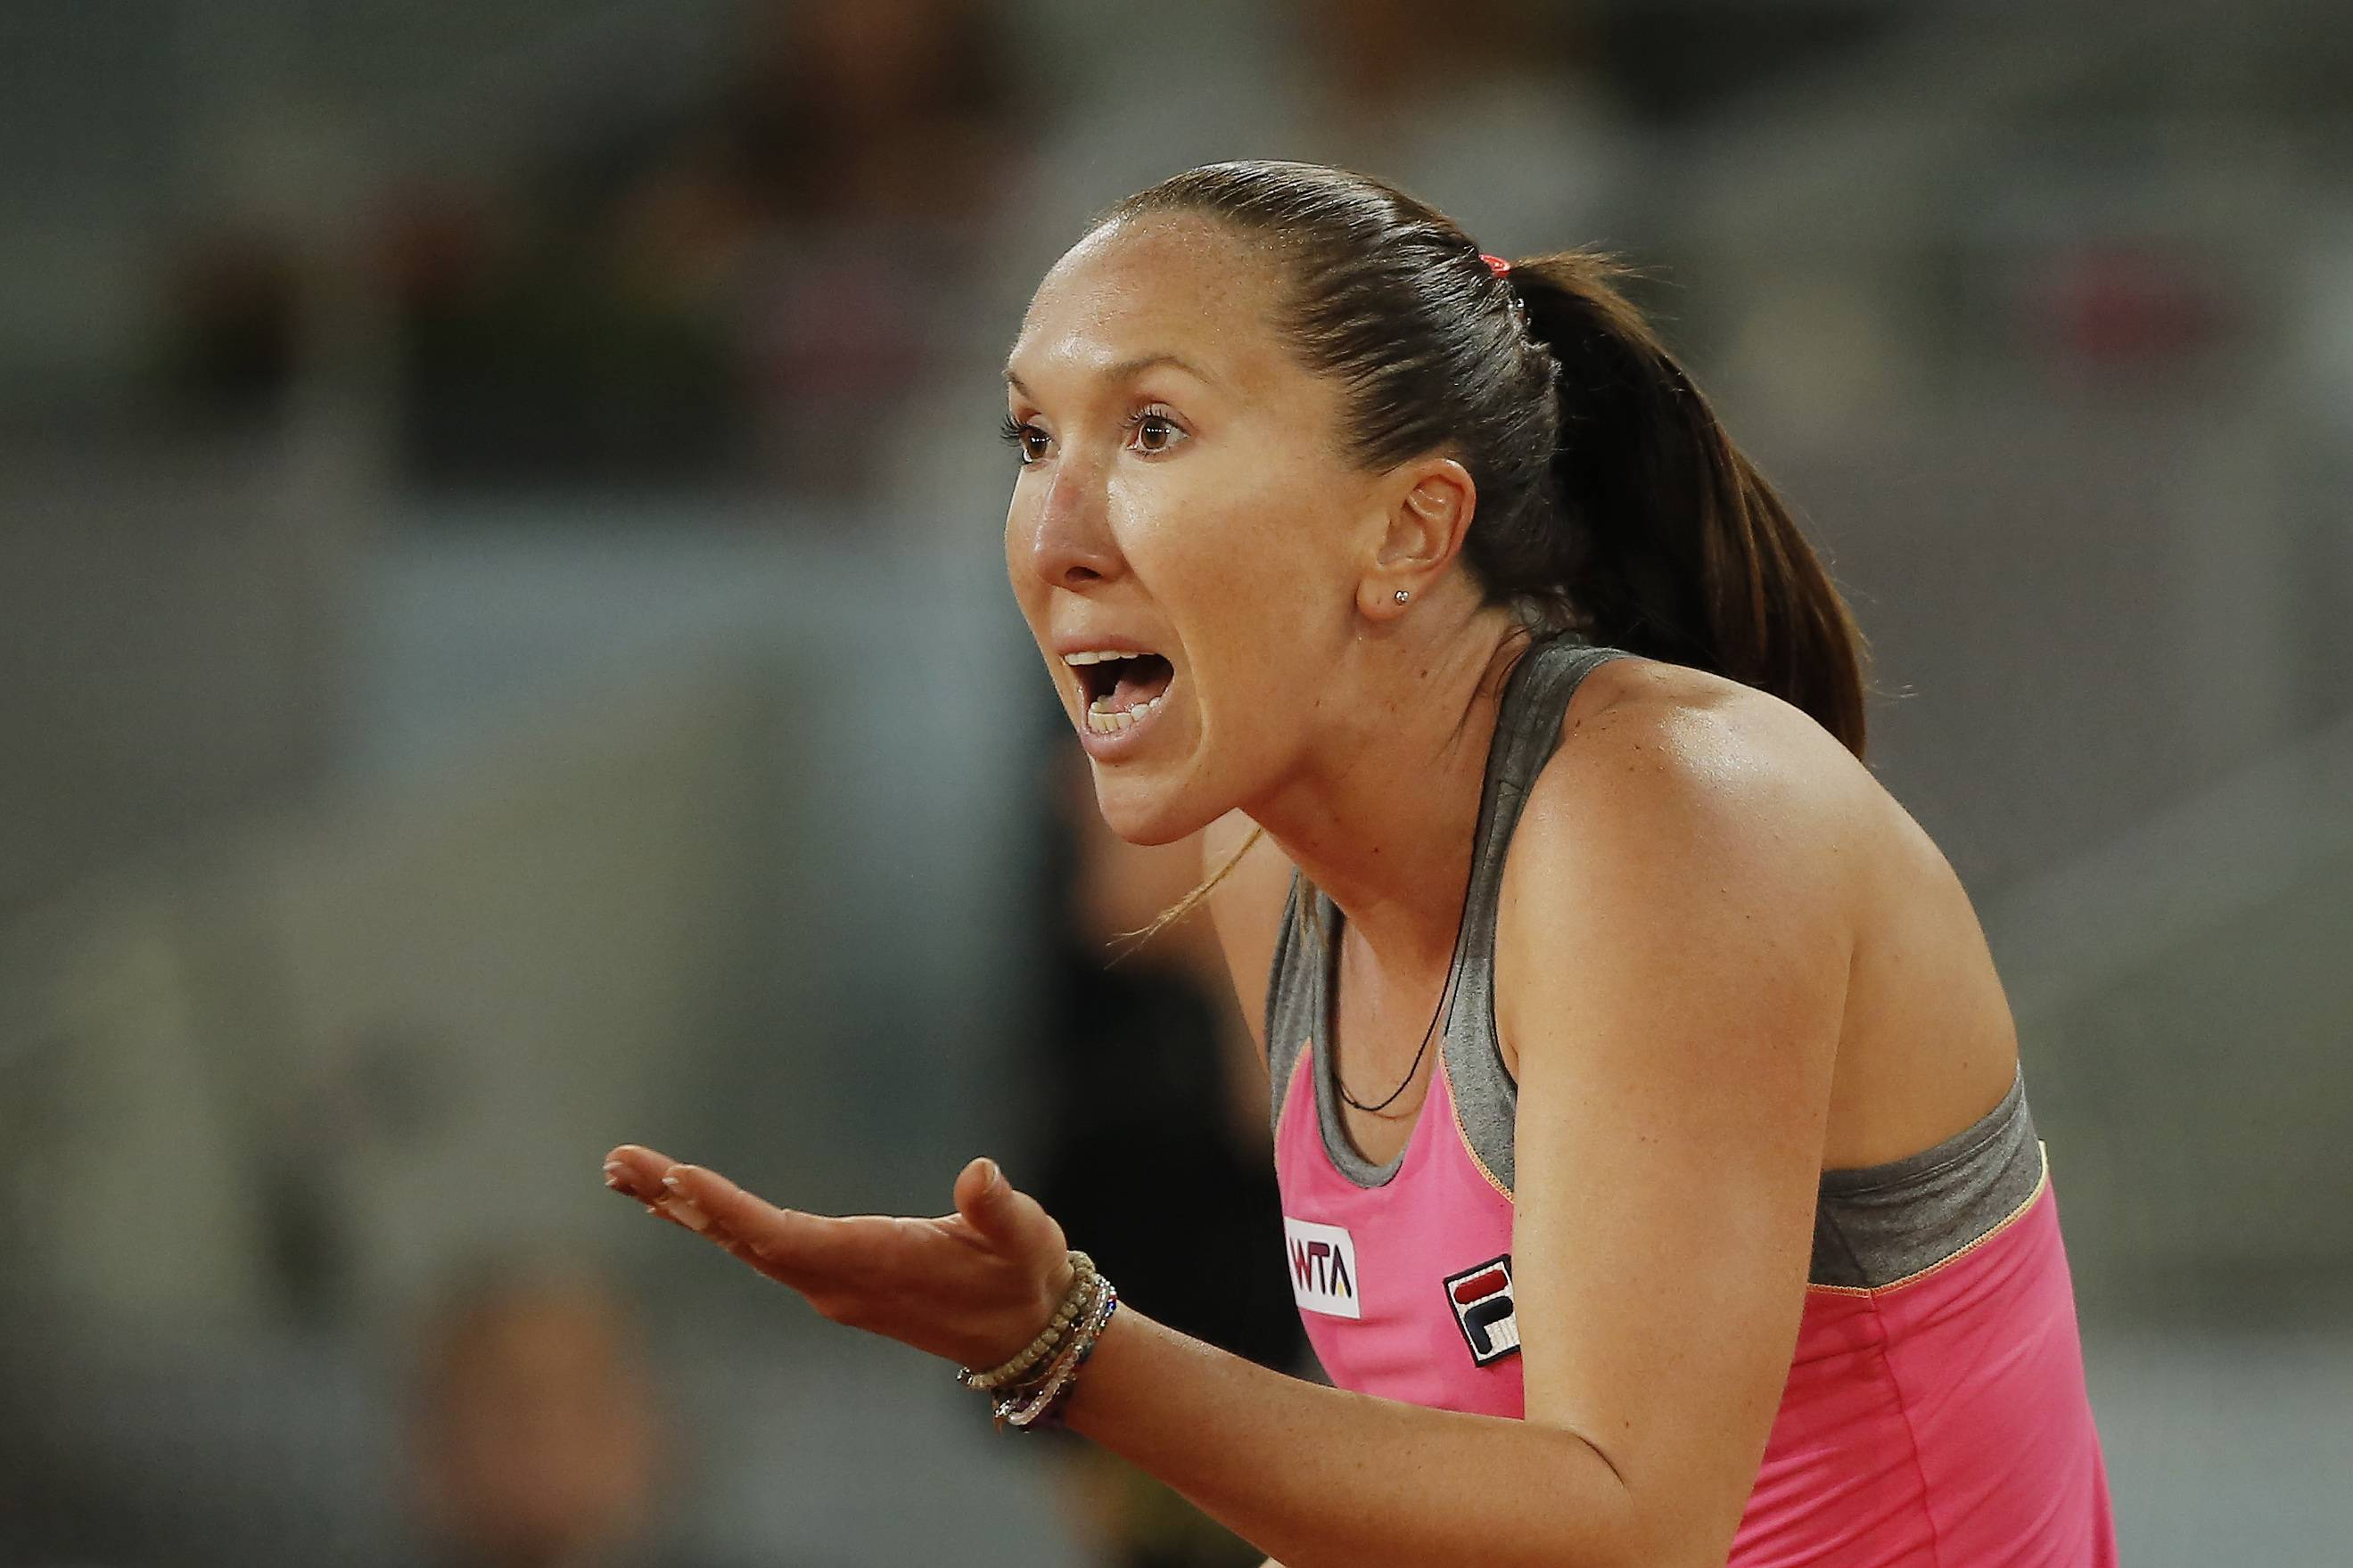 Jelena Jankovic from Serbia reacts during a Madrid Open tennis tournament match against Anastasia Pavlyuchenkova from Russia in Madrid, Spain, Thursday, May 8, 2014.